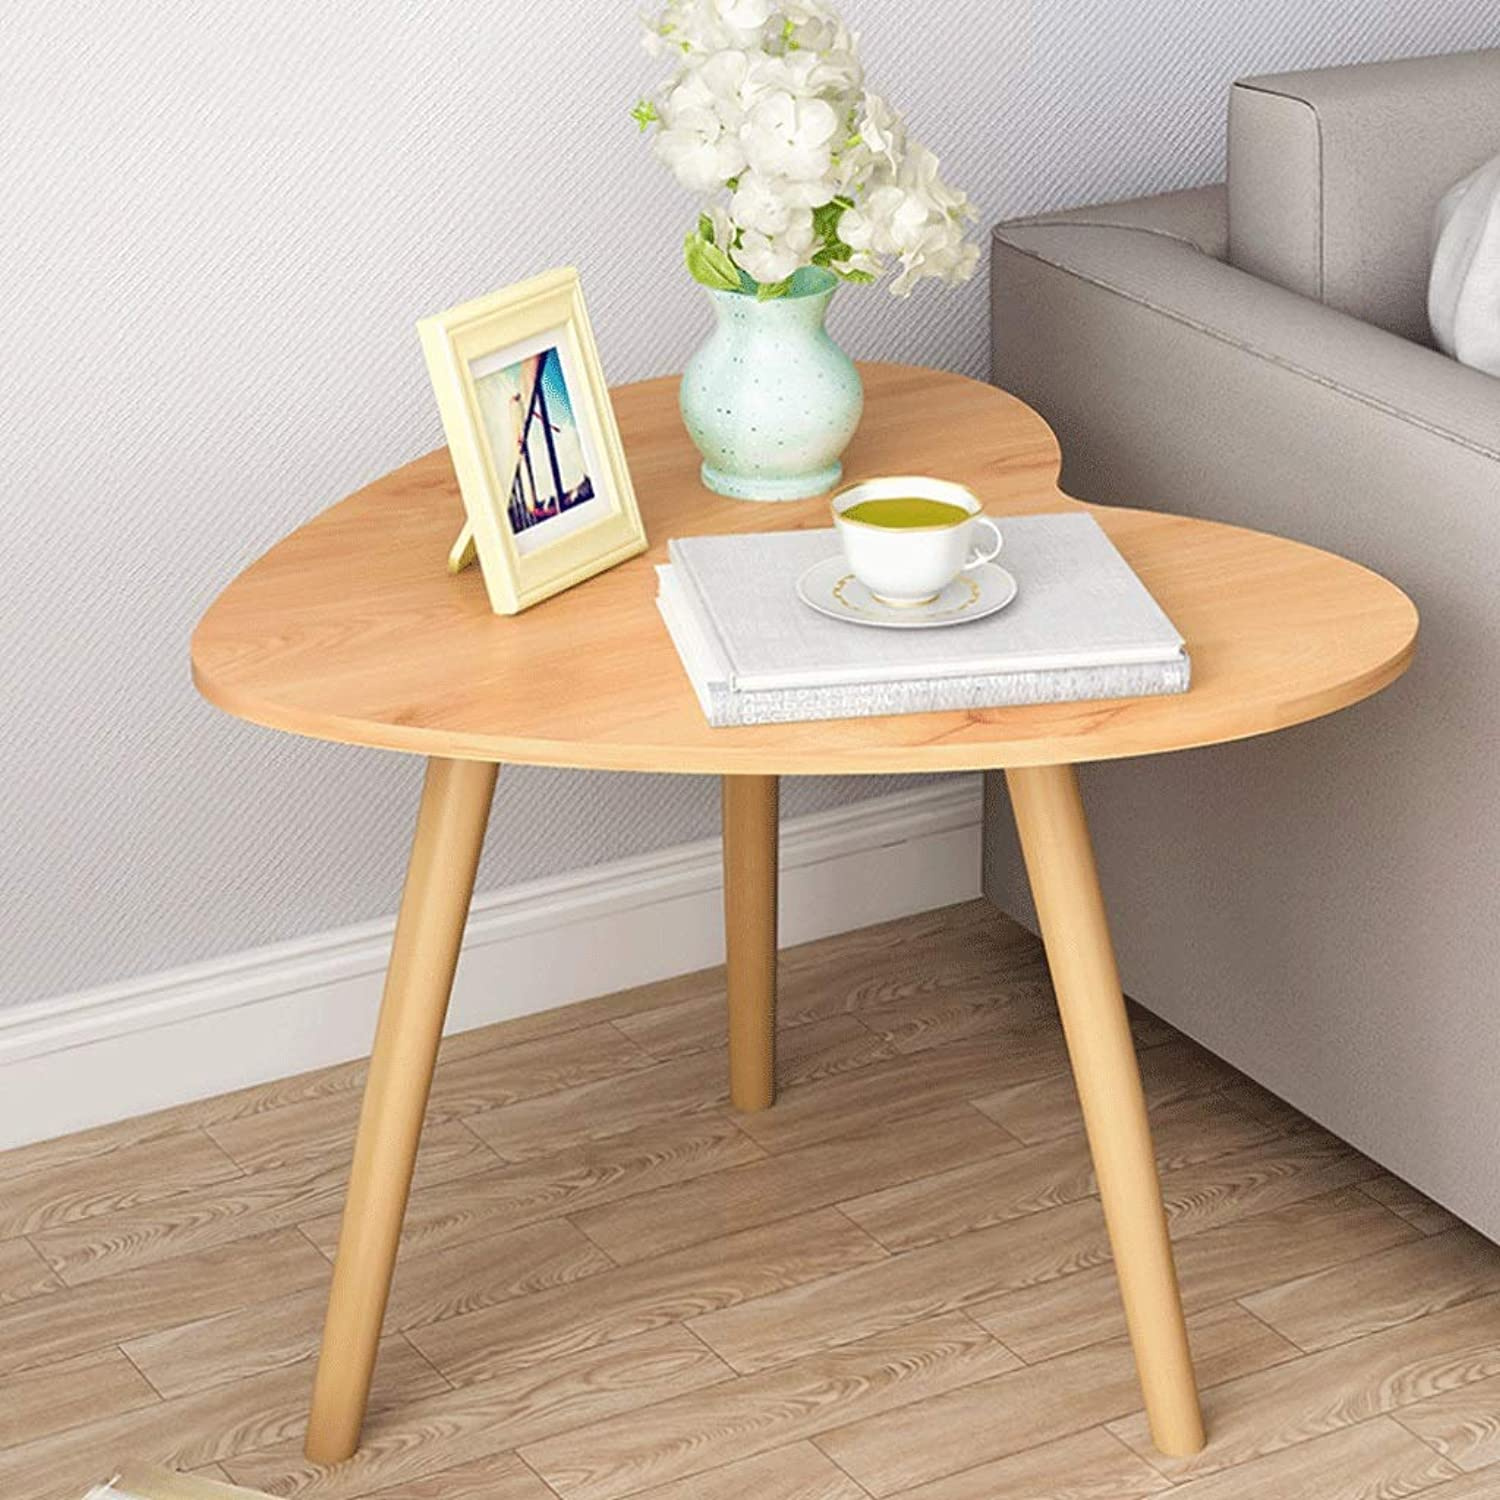 Heart-Shaped Coffee Table Solid Wood End Table Bedroom Bedside Table Sofa Side Table (color   Natural)